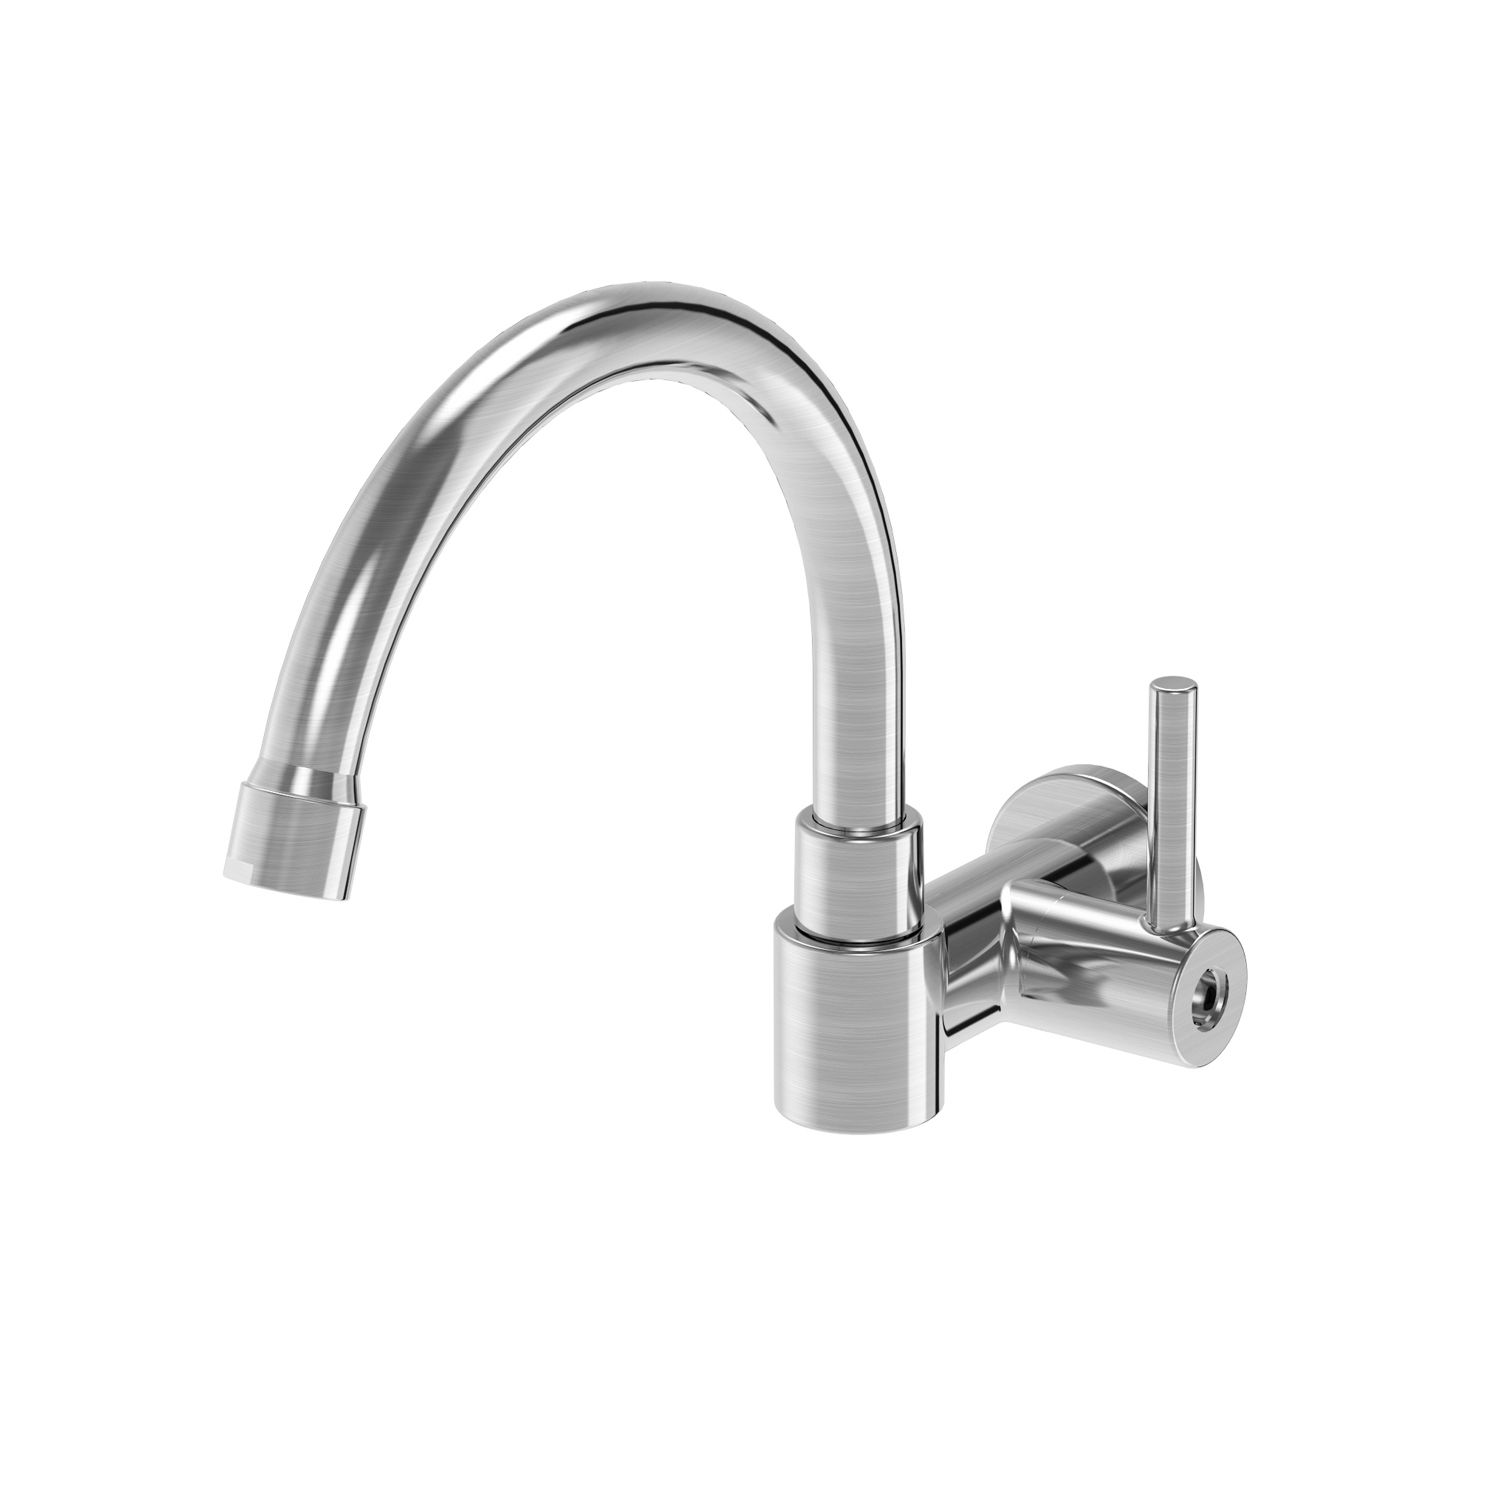 Parmir Ssk 110 Single Handle Wall Mounted Pot Filler Faucet